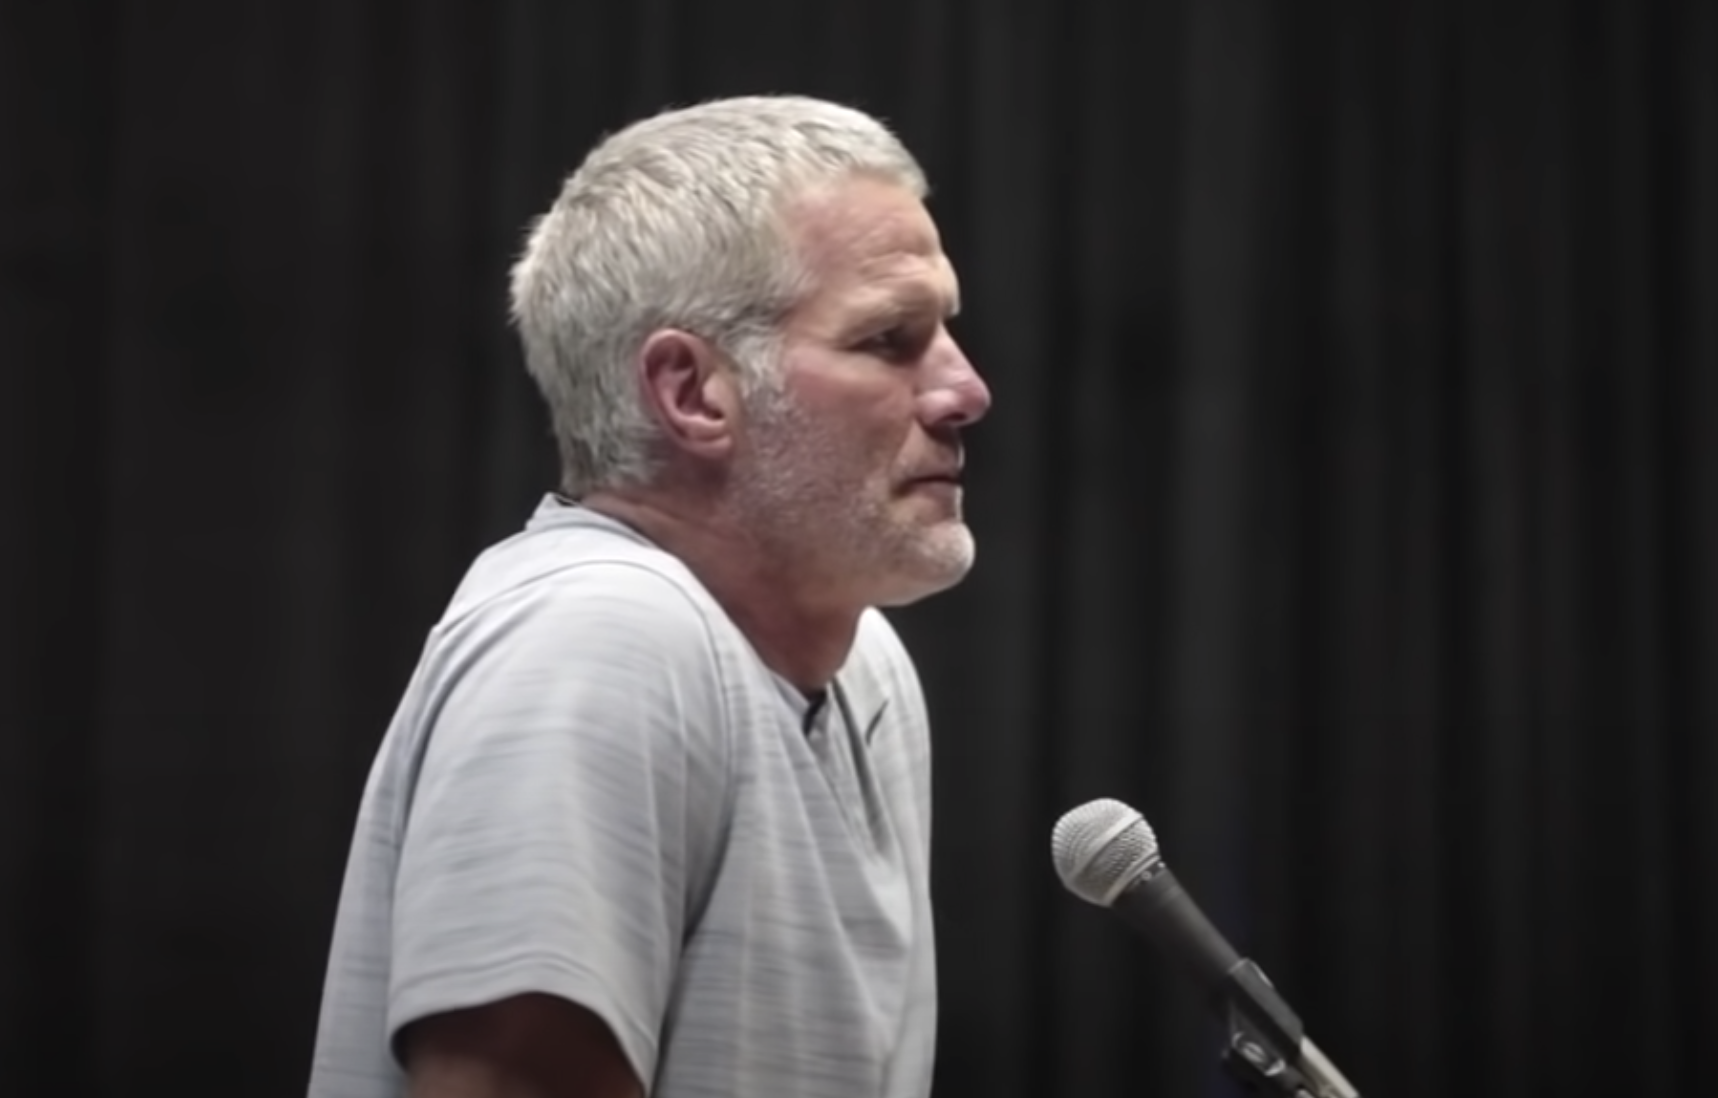 'It's UNFAIR.' Brett Favre OBLITERATES Trans Olympians Competing With Women